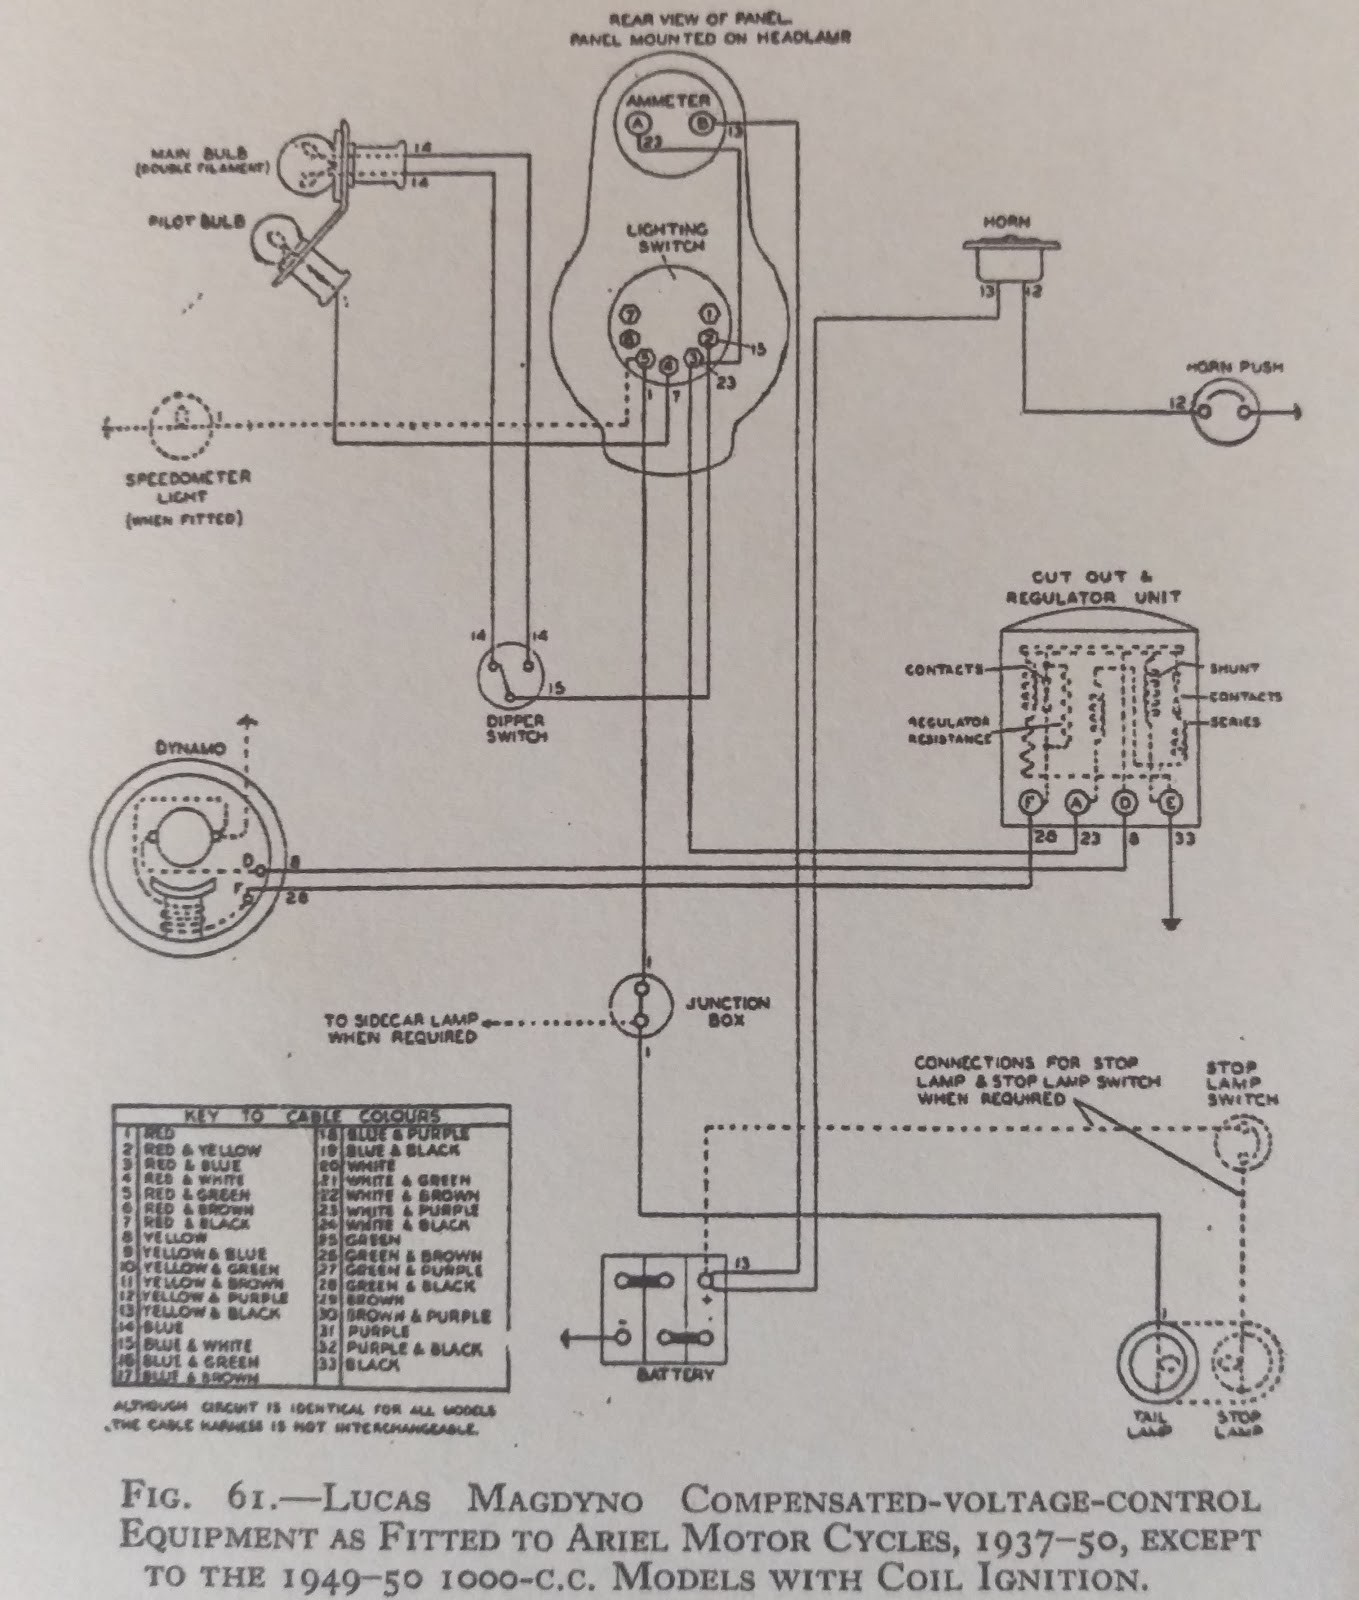 negative bsa ground wiring diagram wiring diagrams long 1965 bsa 6 volt positive ground wiring diagram [ 1359 x 1600 Pixel ]